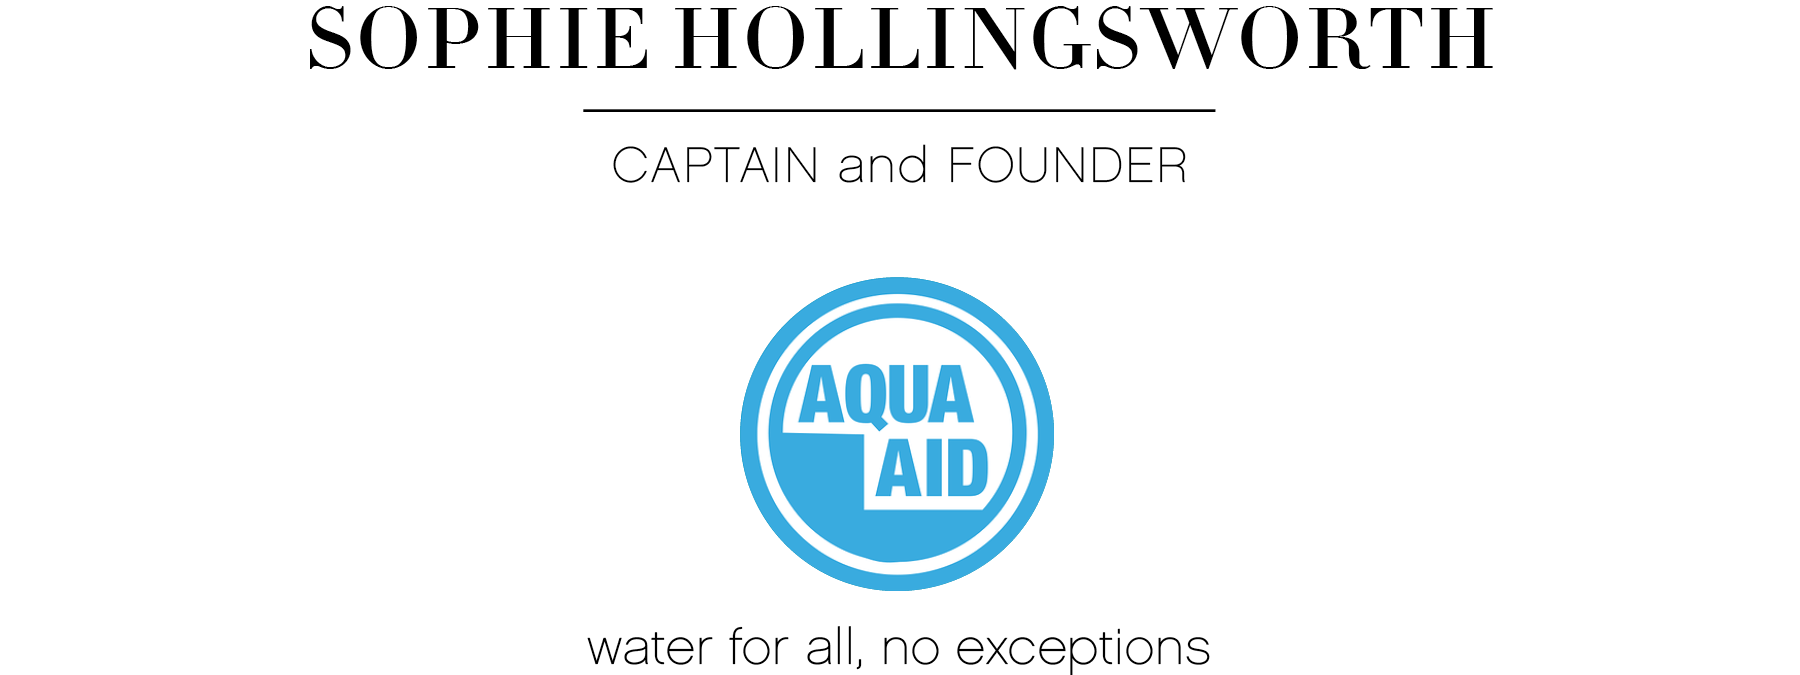 Sophie Hollingsworth Aqua Aid